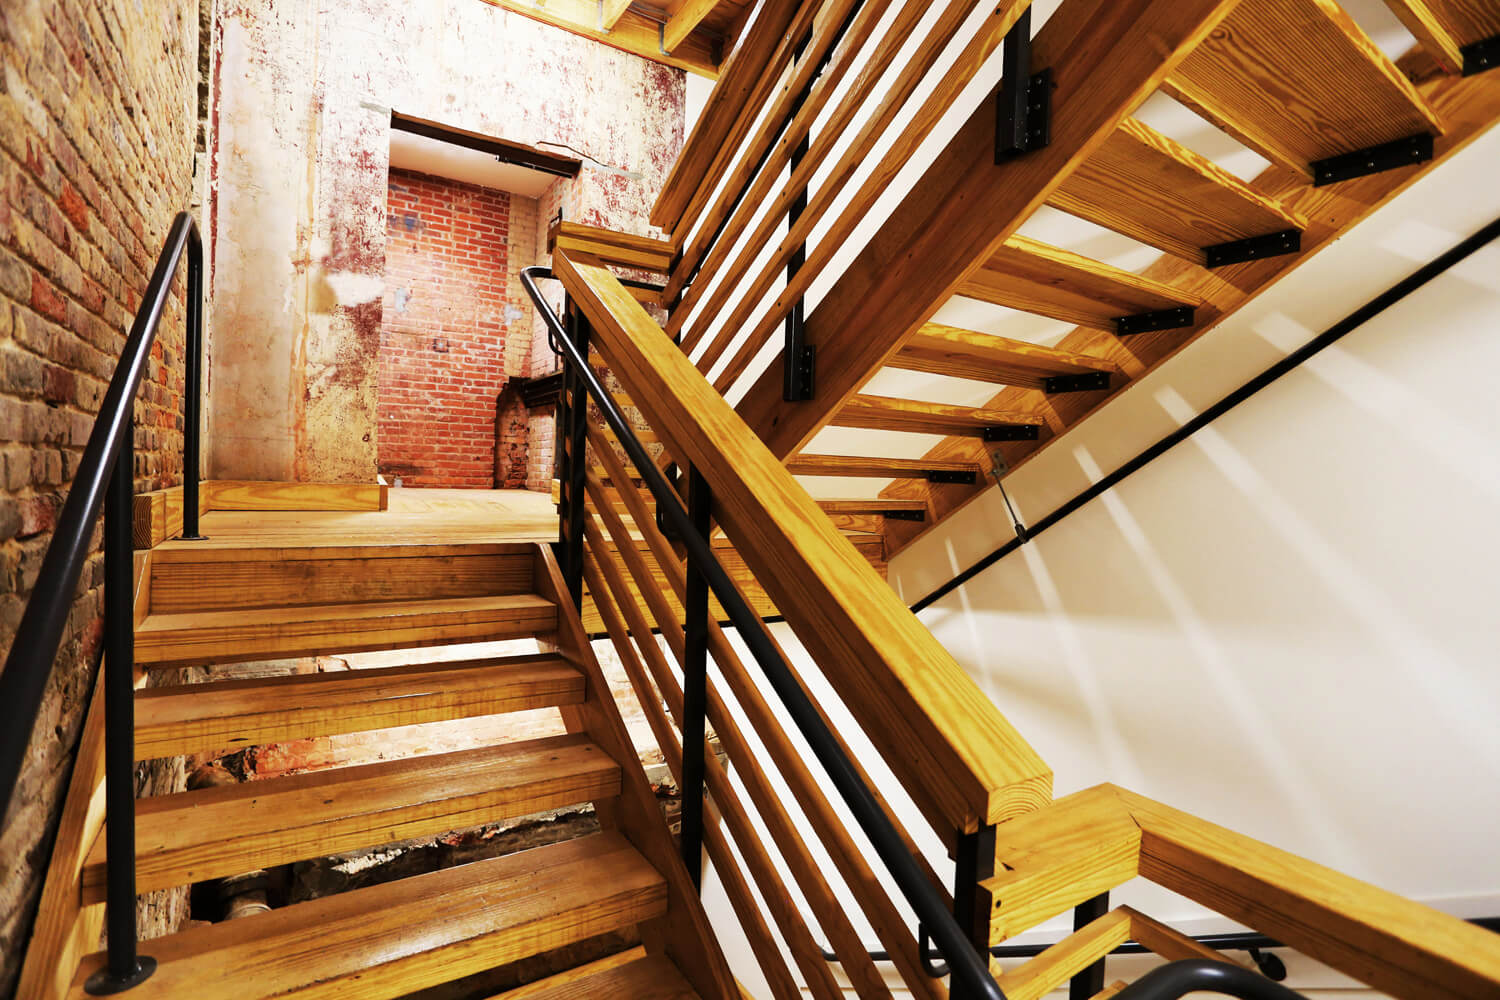 District 36 Lofts Designed by Foshee Architecture - Rear Wood Stairs with Exposed Brick Walls